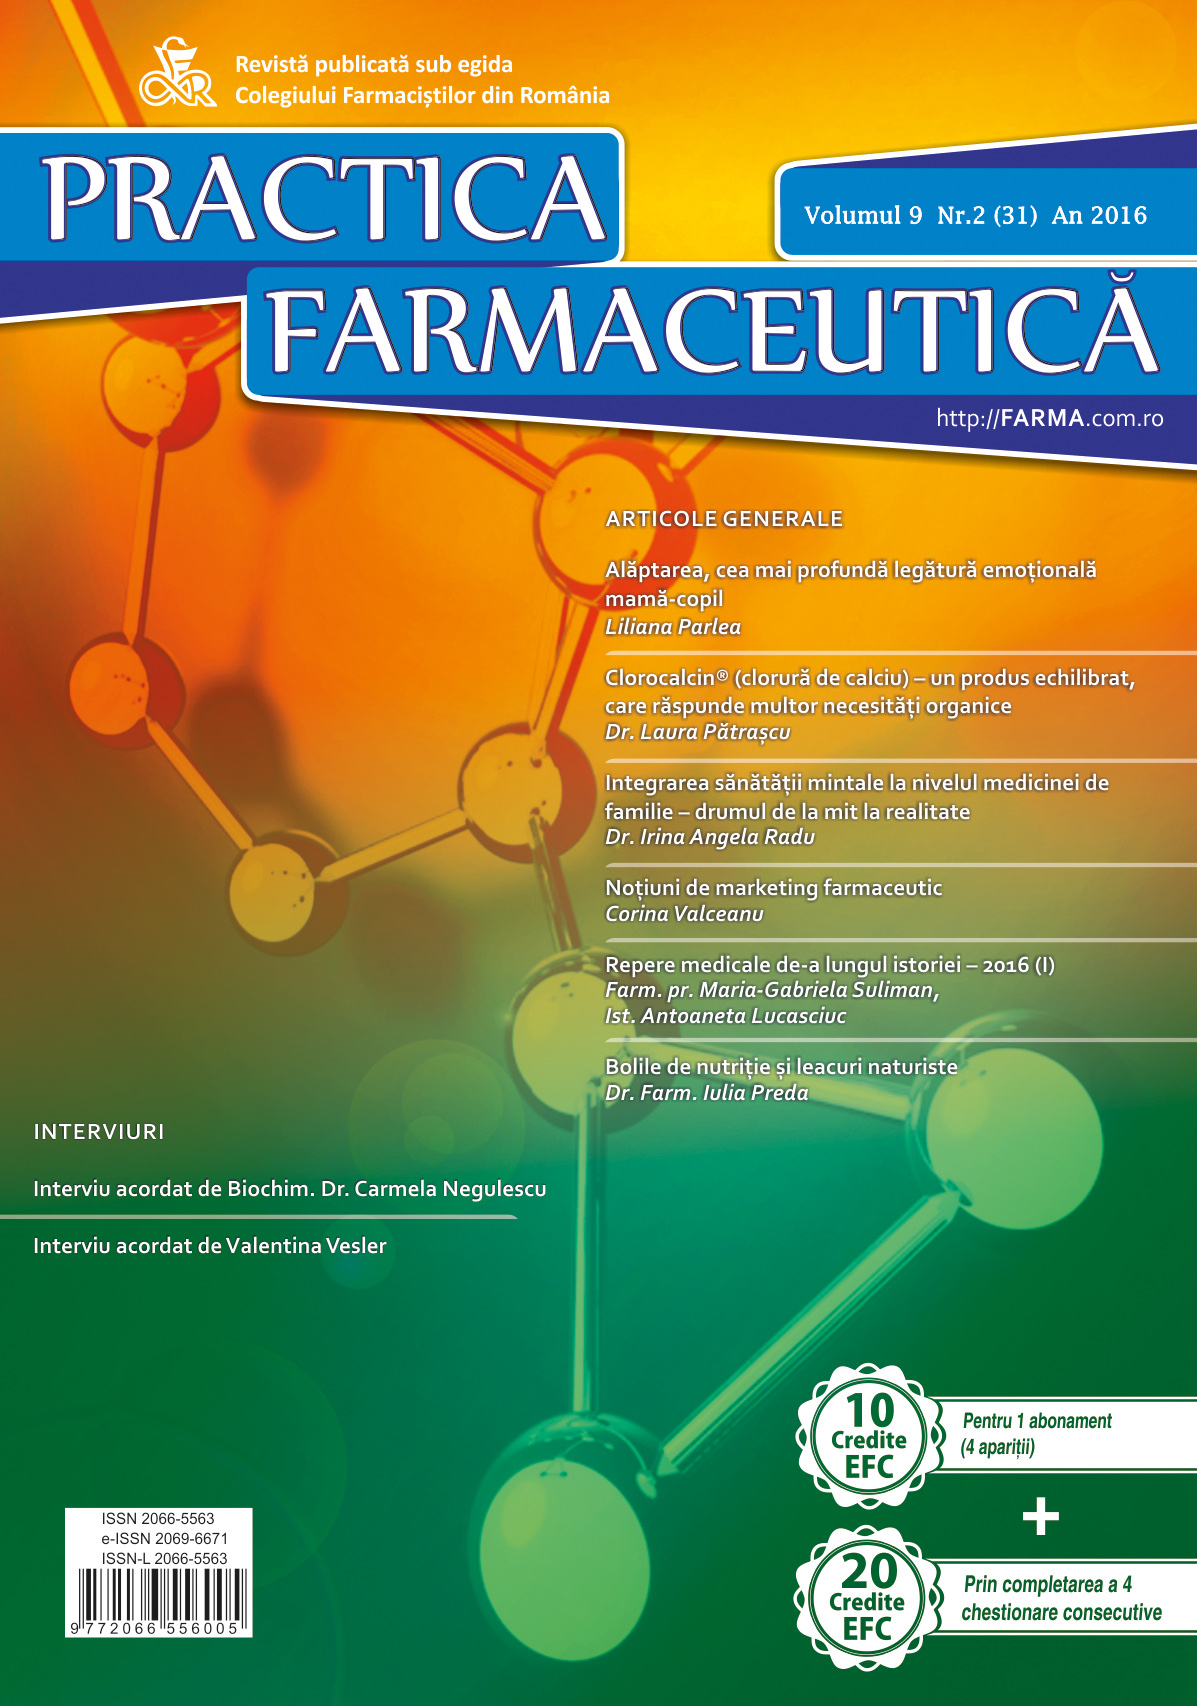 Revista Practica Farmaceutica, Vol. IX, No. 2 (31), 2016